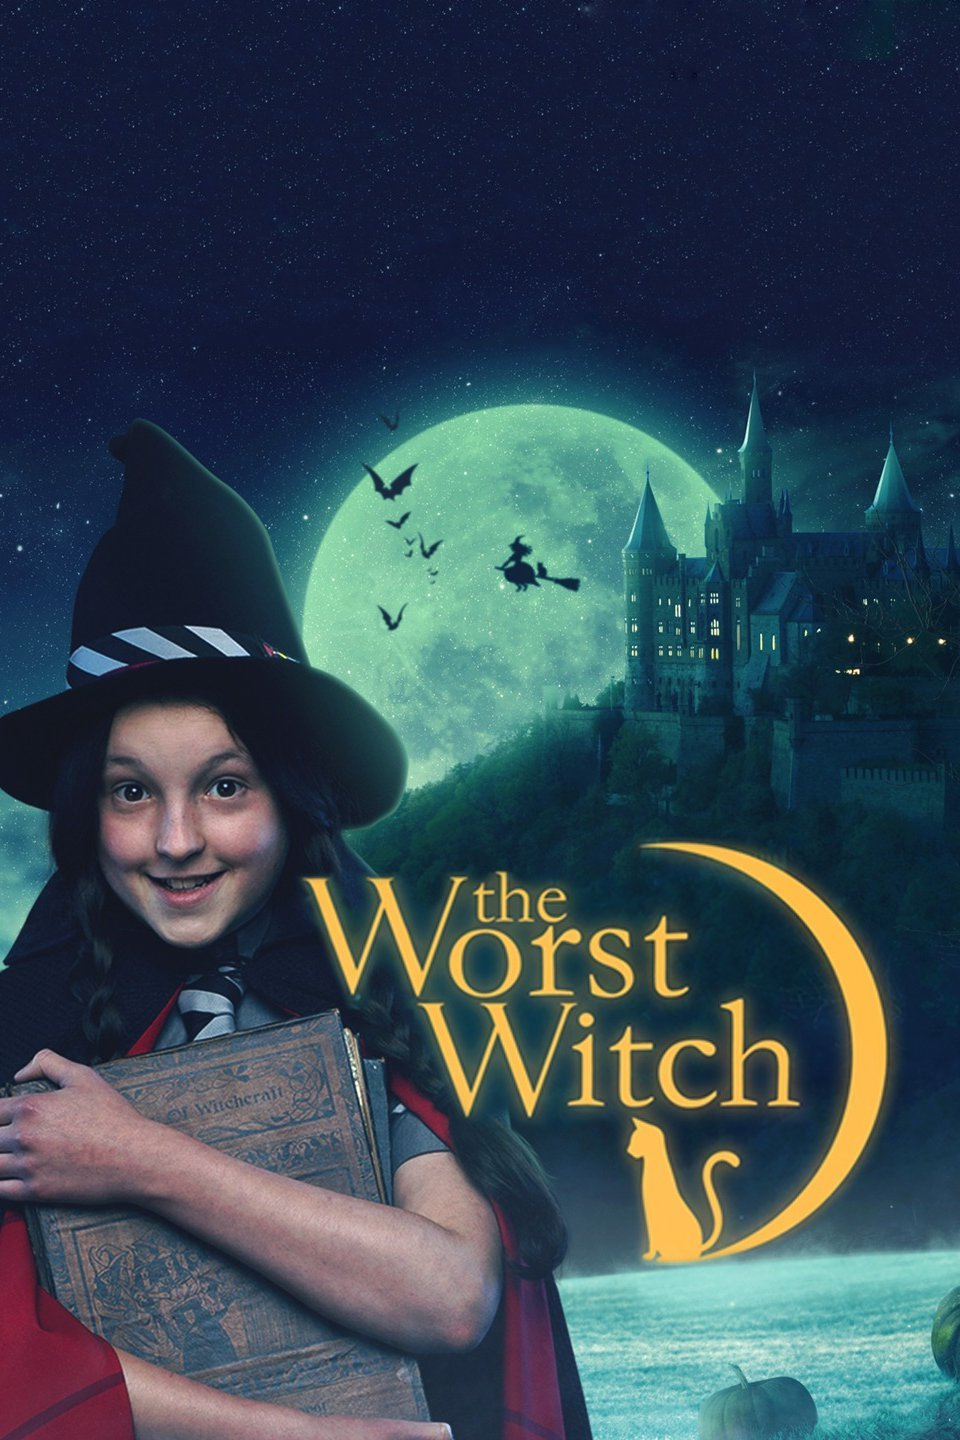 The Worst Witch S01 E04